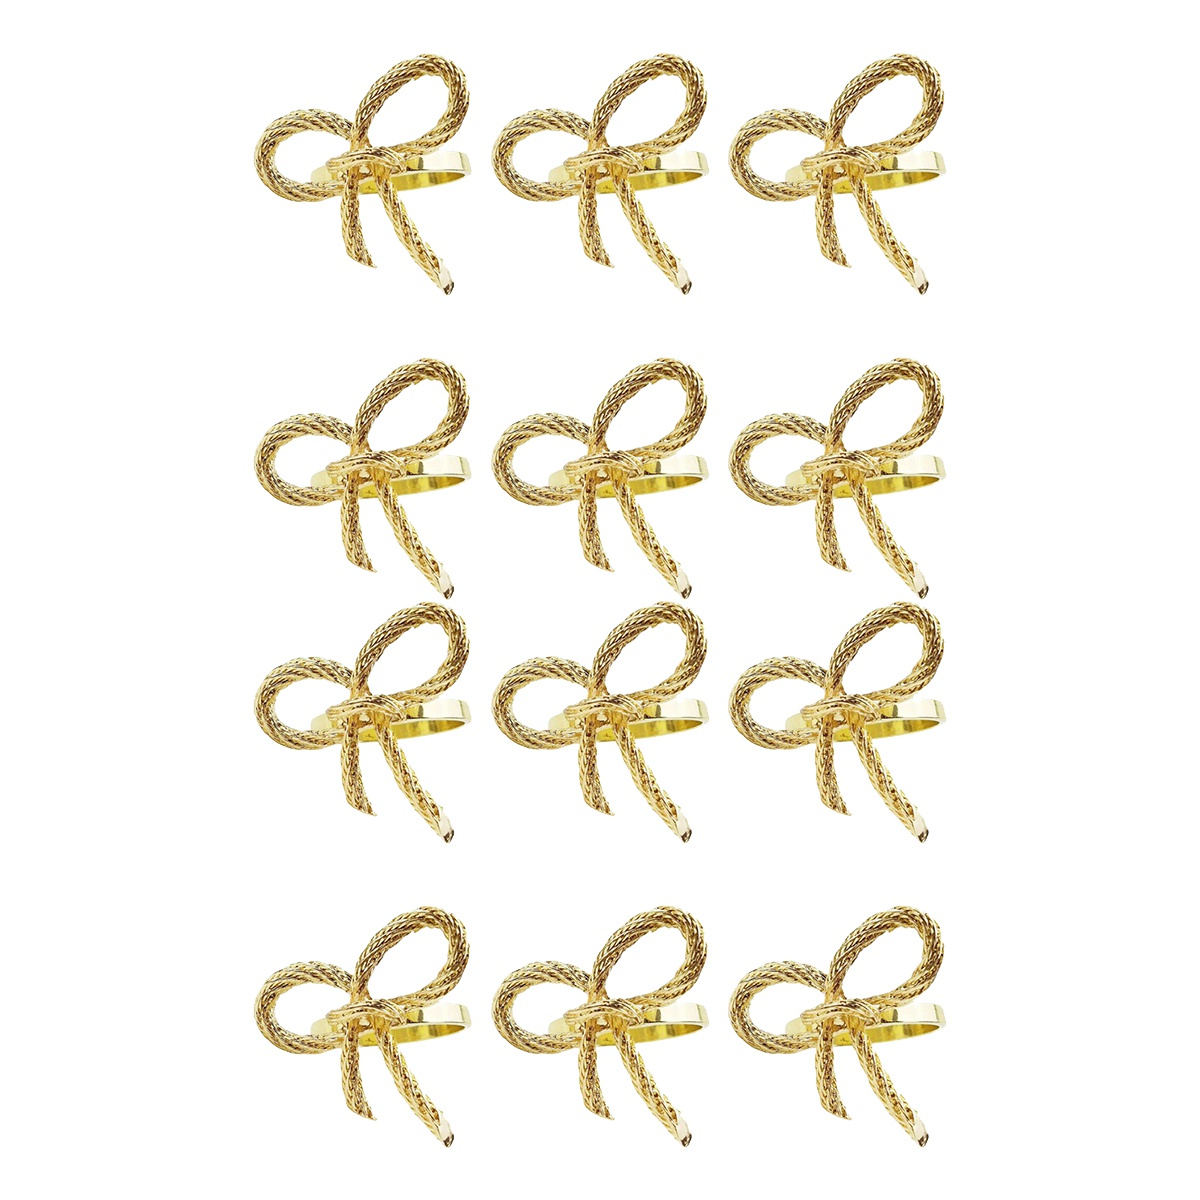 12pcs Lot Simple Golden Napkin Ring Butterfly Bow Tie Napkin Buckle Hotel Restaurant Mouth Cloth Ring Metal Napkin Ring Buy Online At Best Prices In Pakistan Daraz Pk